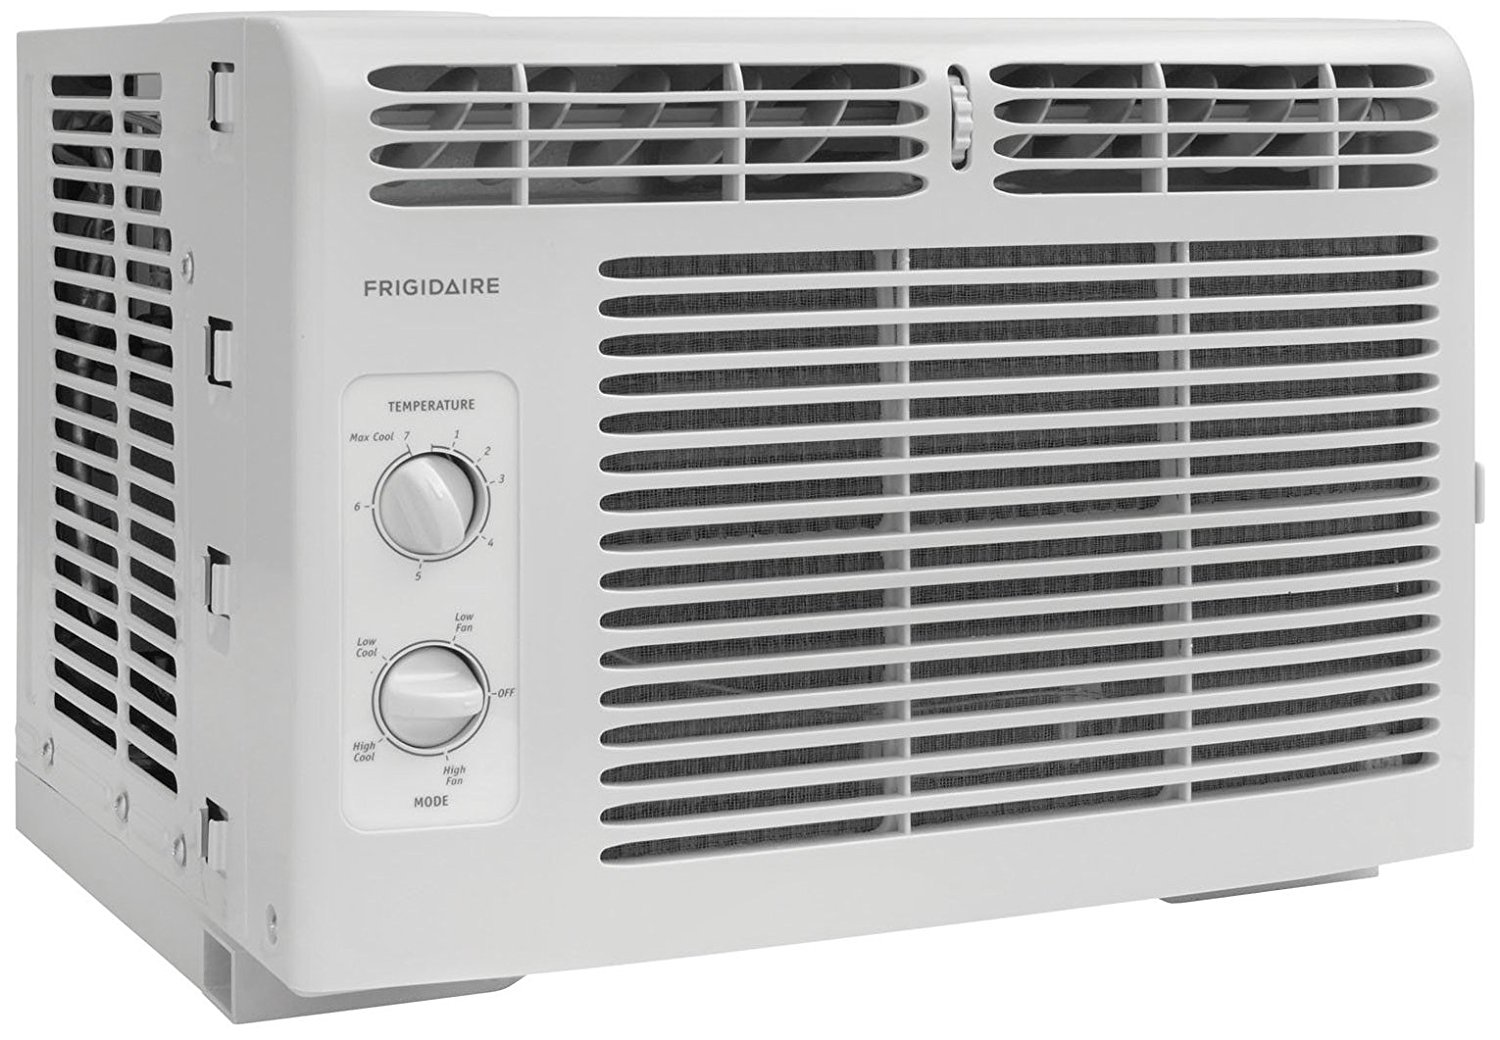 Review of Frigidaire FFRA0511R1 5, 000 BTU 115V Window-Mounted Mini-Compact Air Conditioner with Mechanical Controls